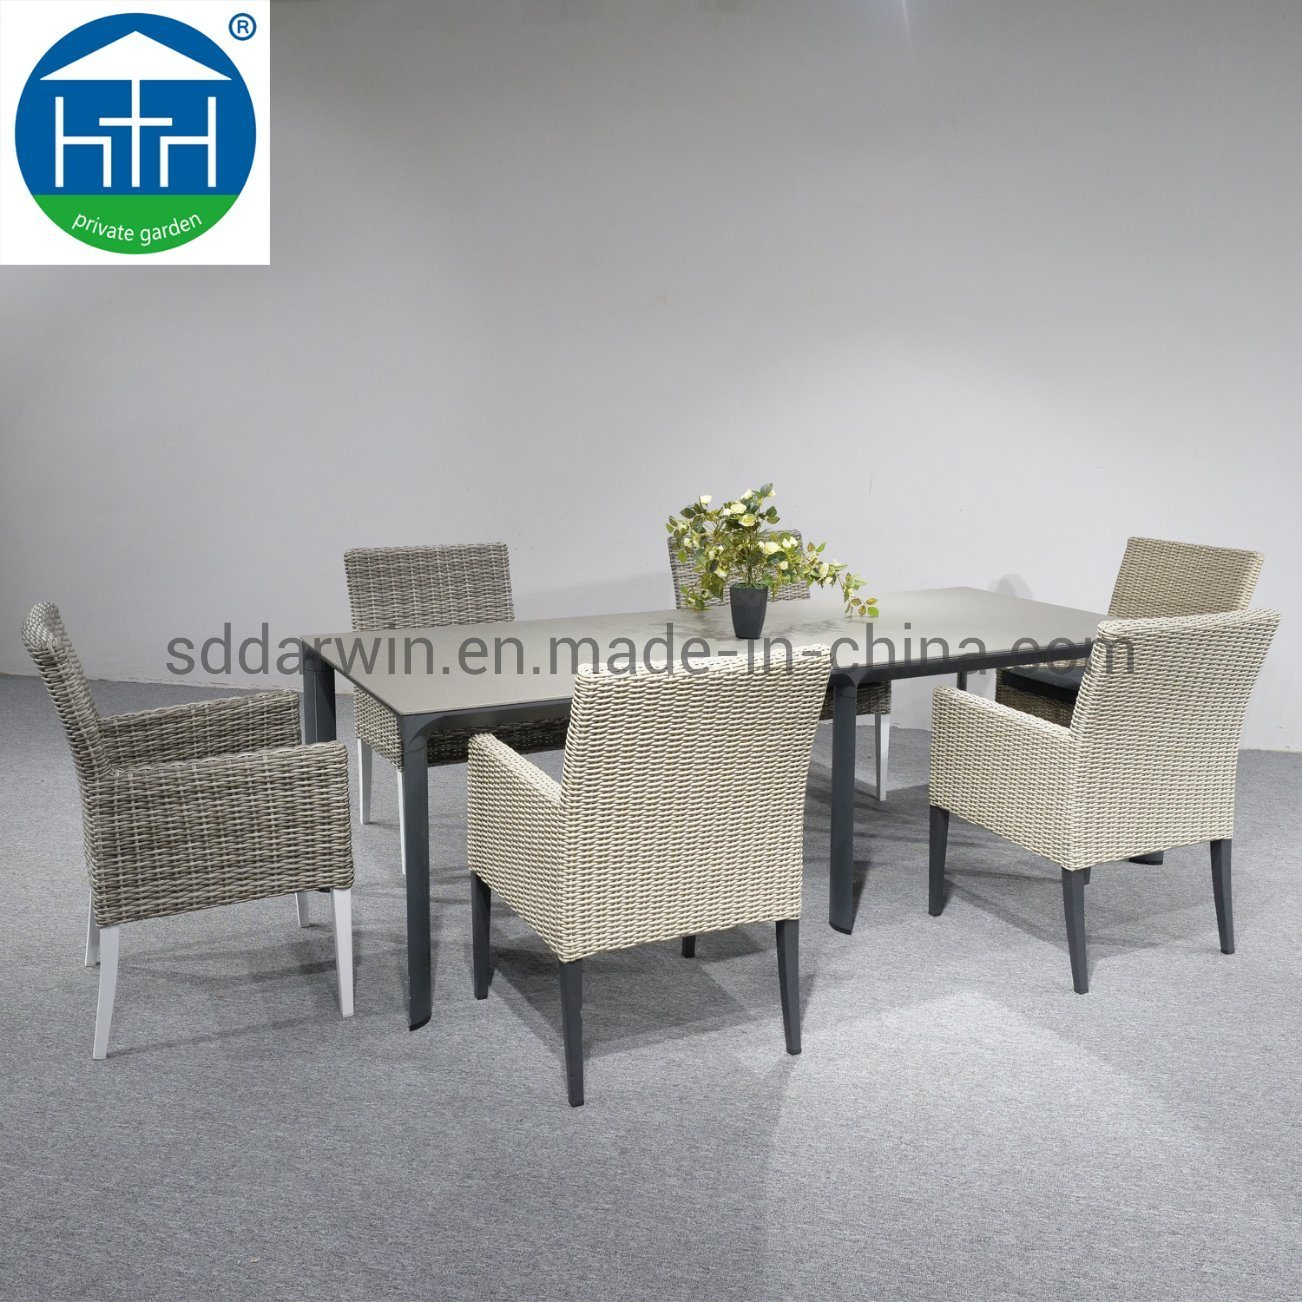 Hot Item Elegant Design Table And Chair Garden Rattan Wicker Patio Furniture Outdoor Dining Set